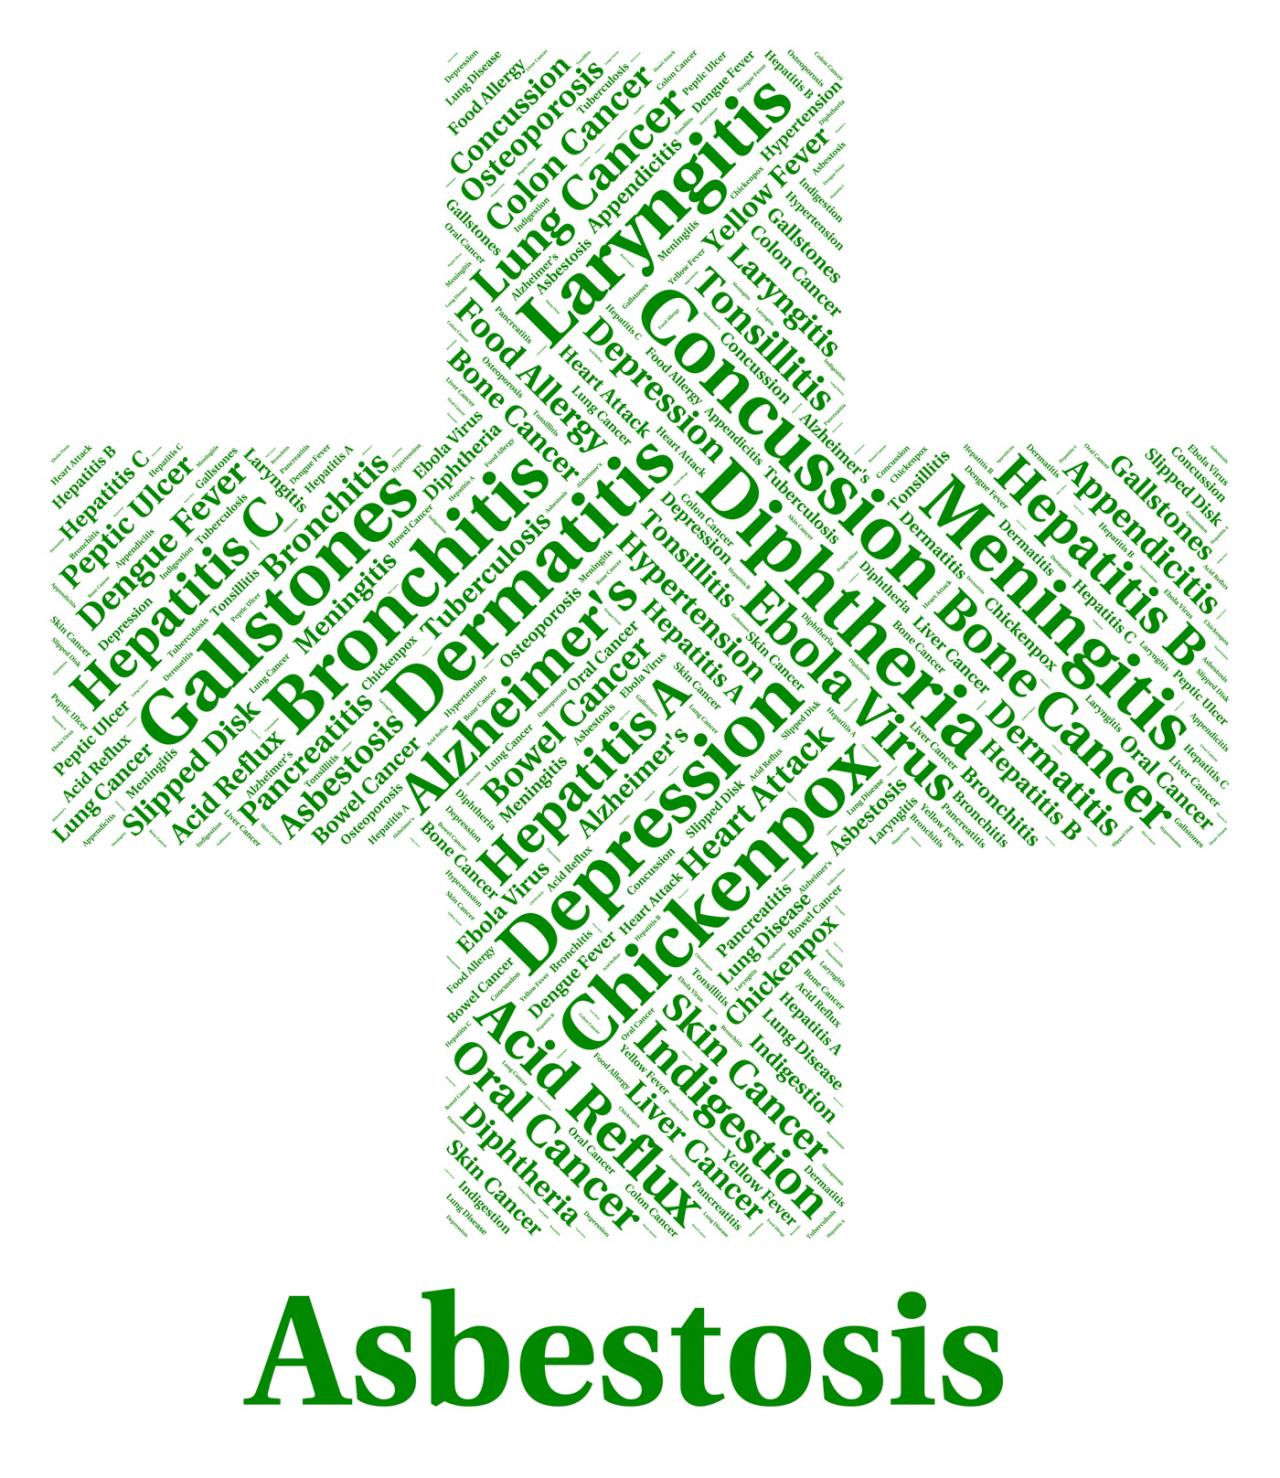 Free photo asbestosis illness indicates lung cancer and ailments asbestosis illness indicates lung cancer and ailments biocorpaavc Image collections